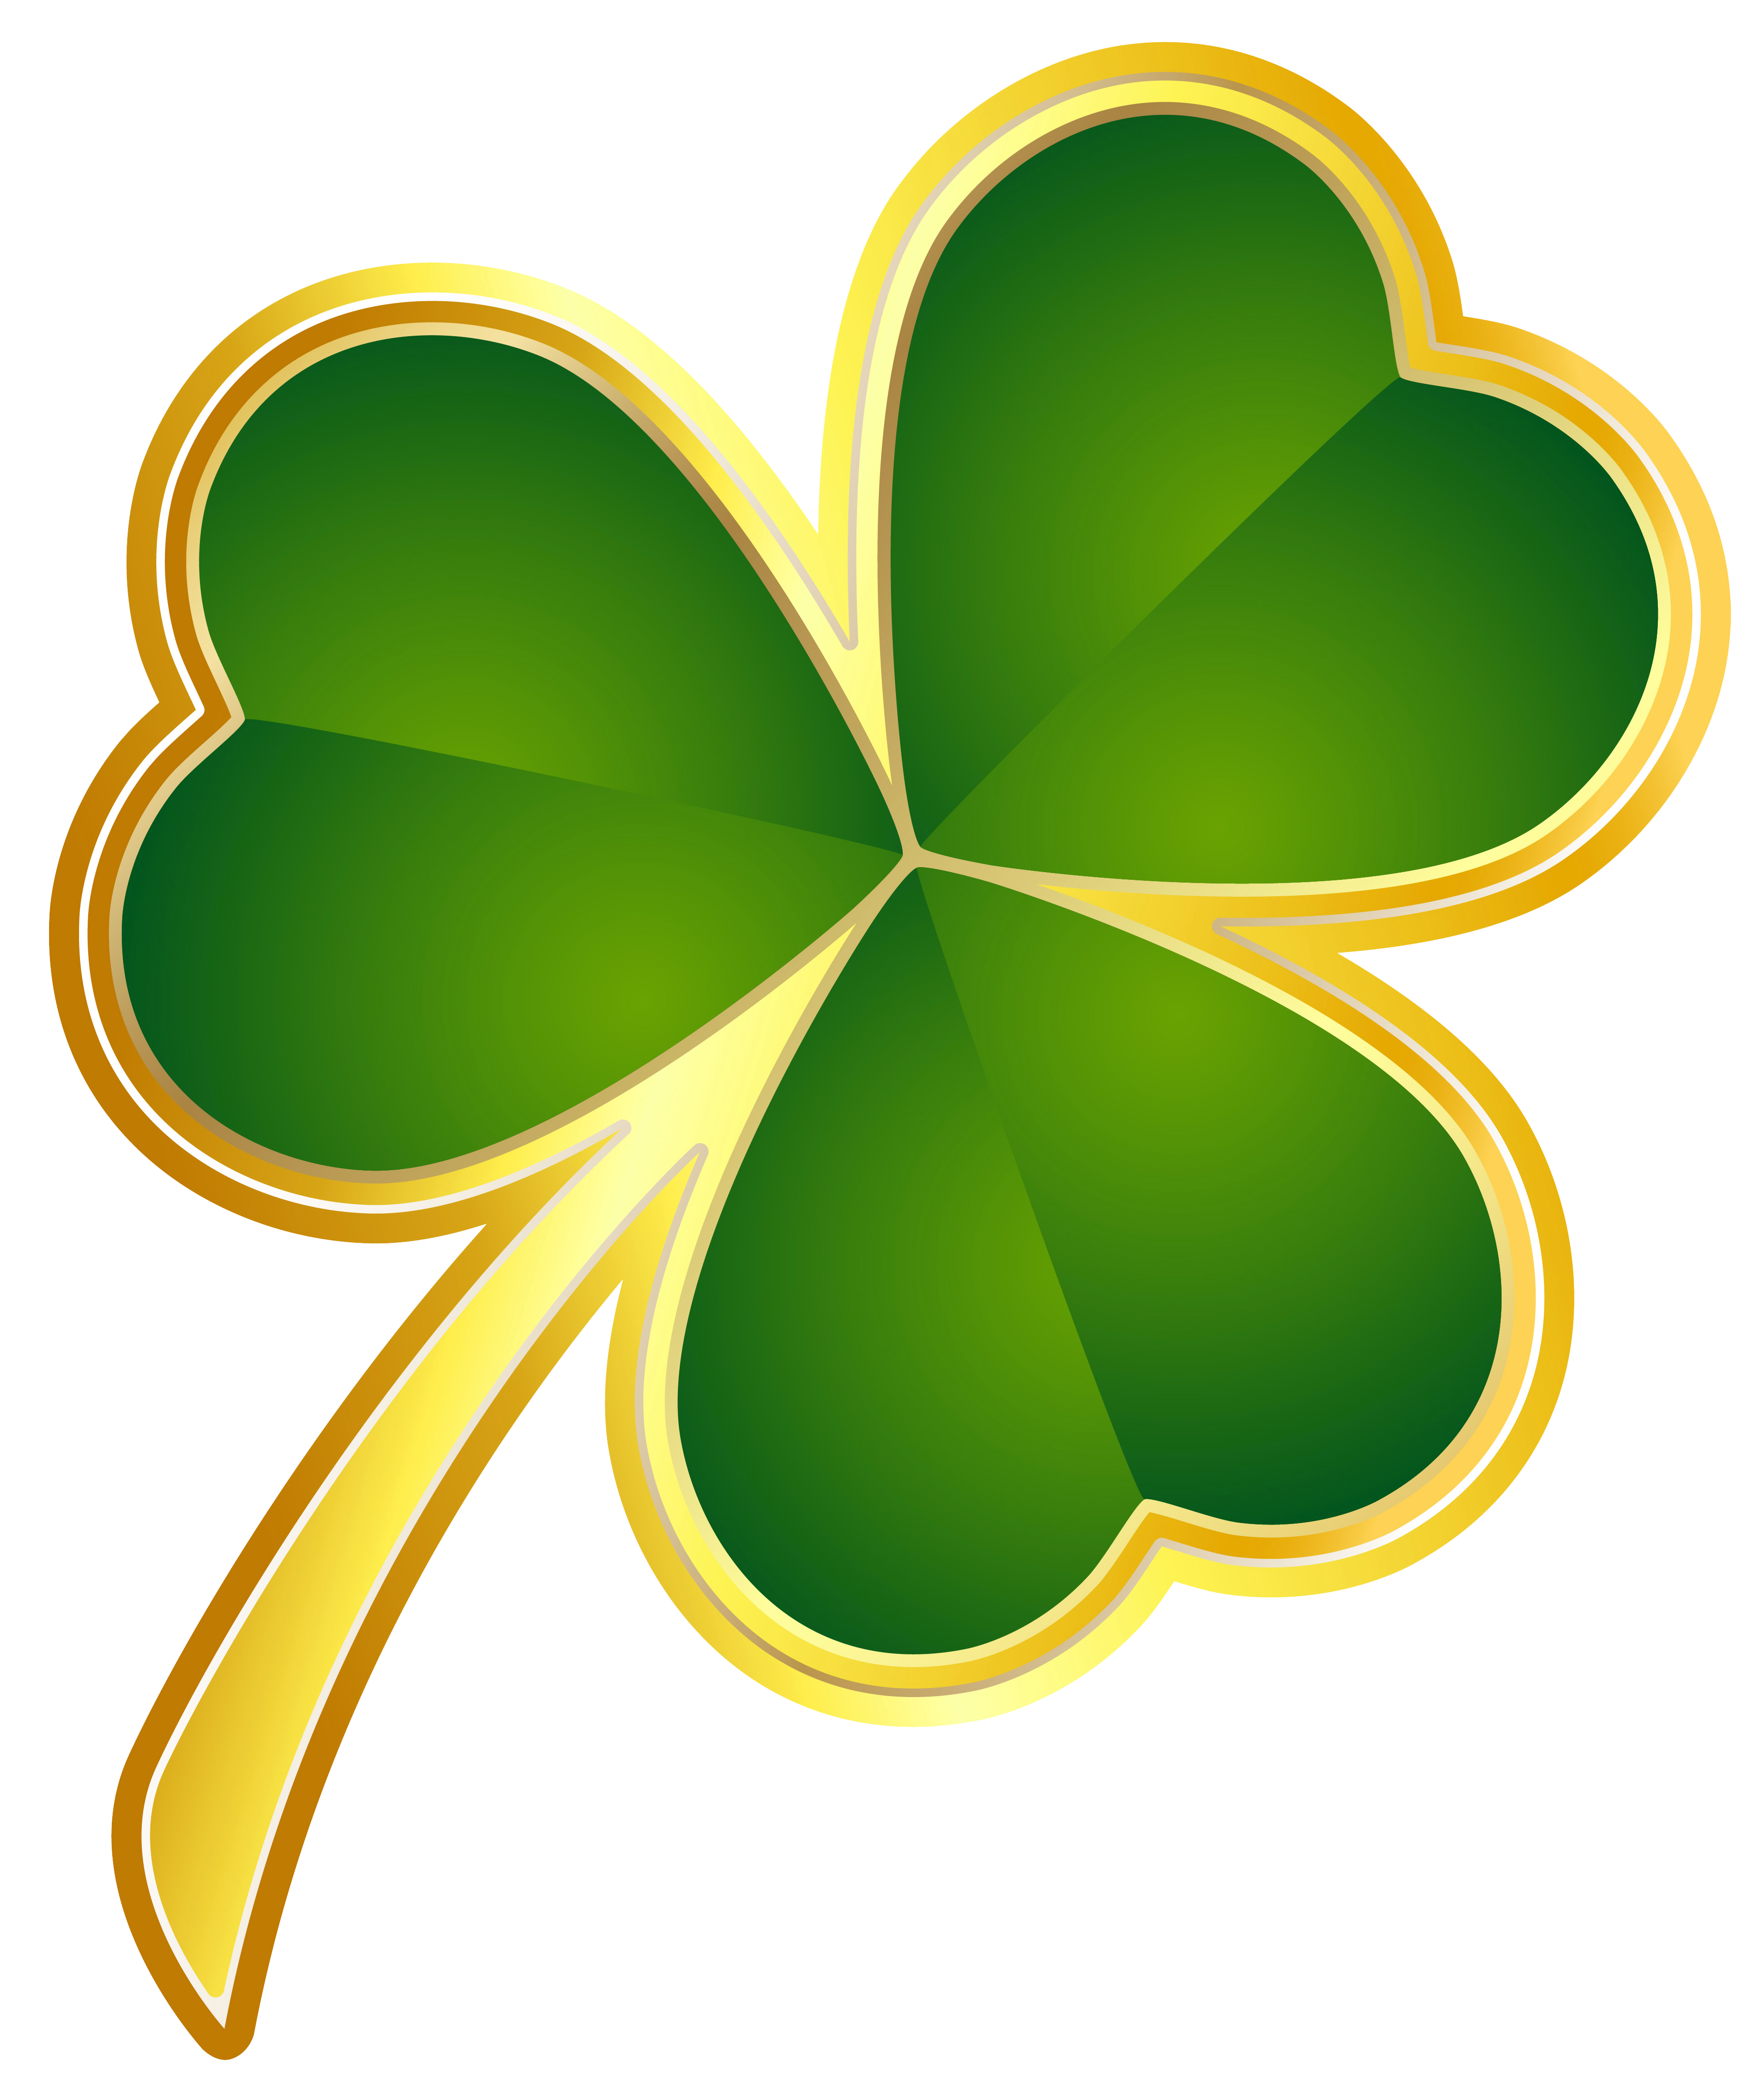 Shamrock Holdings Inc Shamrock was founded by the late Roy E Disney in 1978 and serves as the investment vehicle for certain members of the Roy E Disney Family